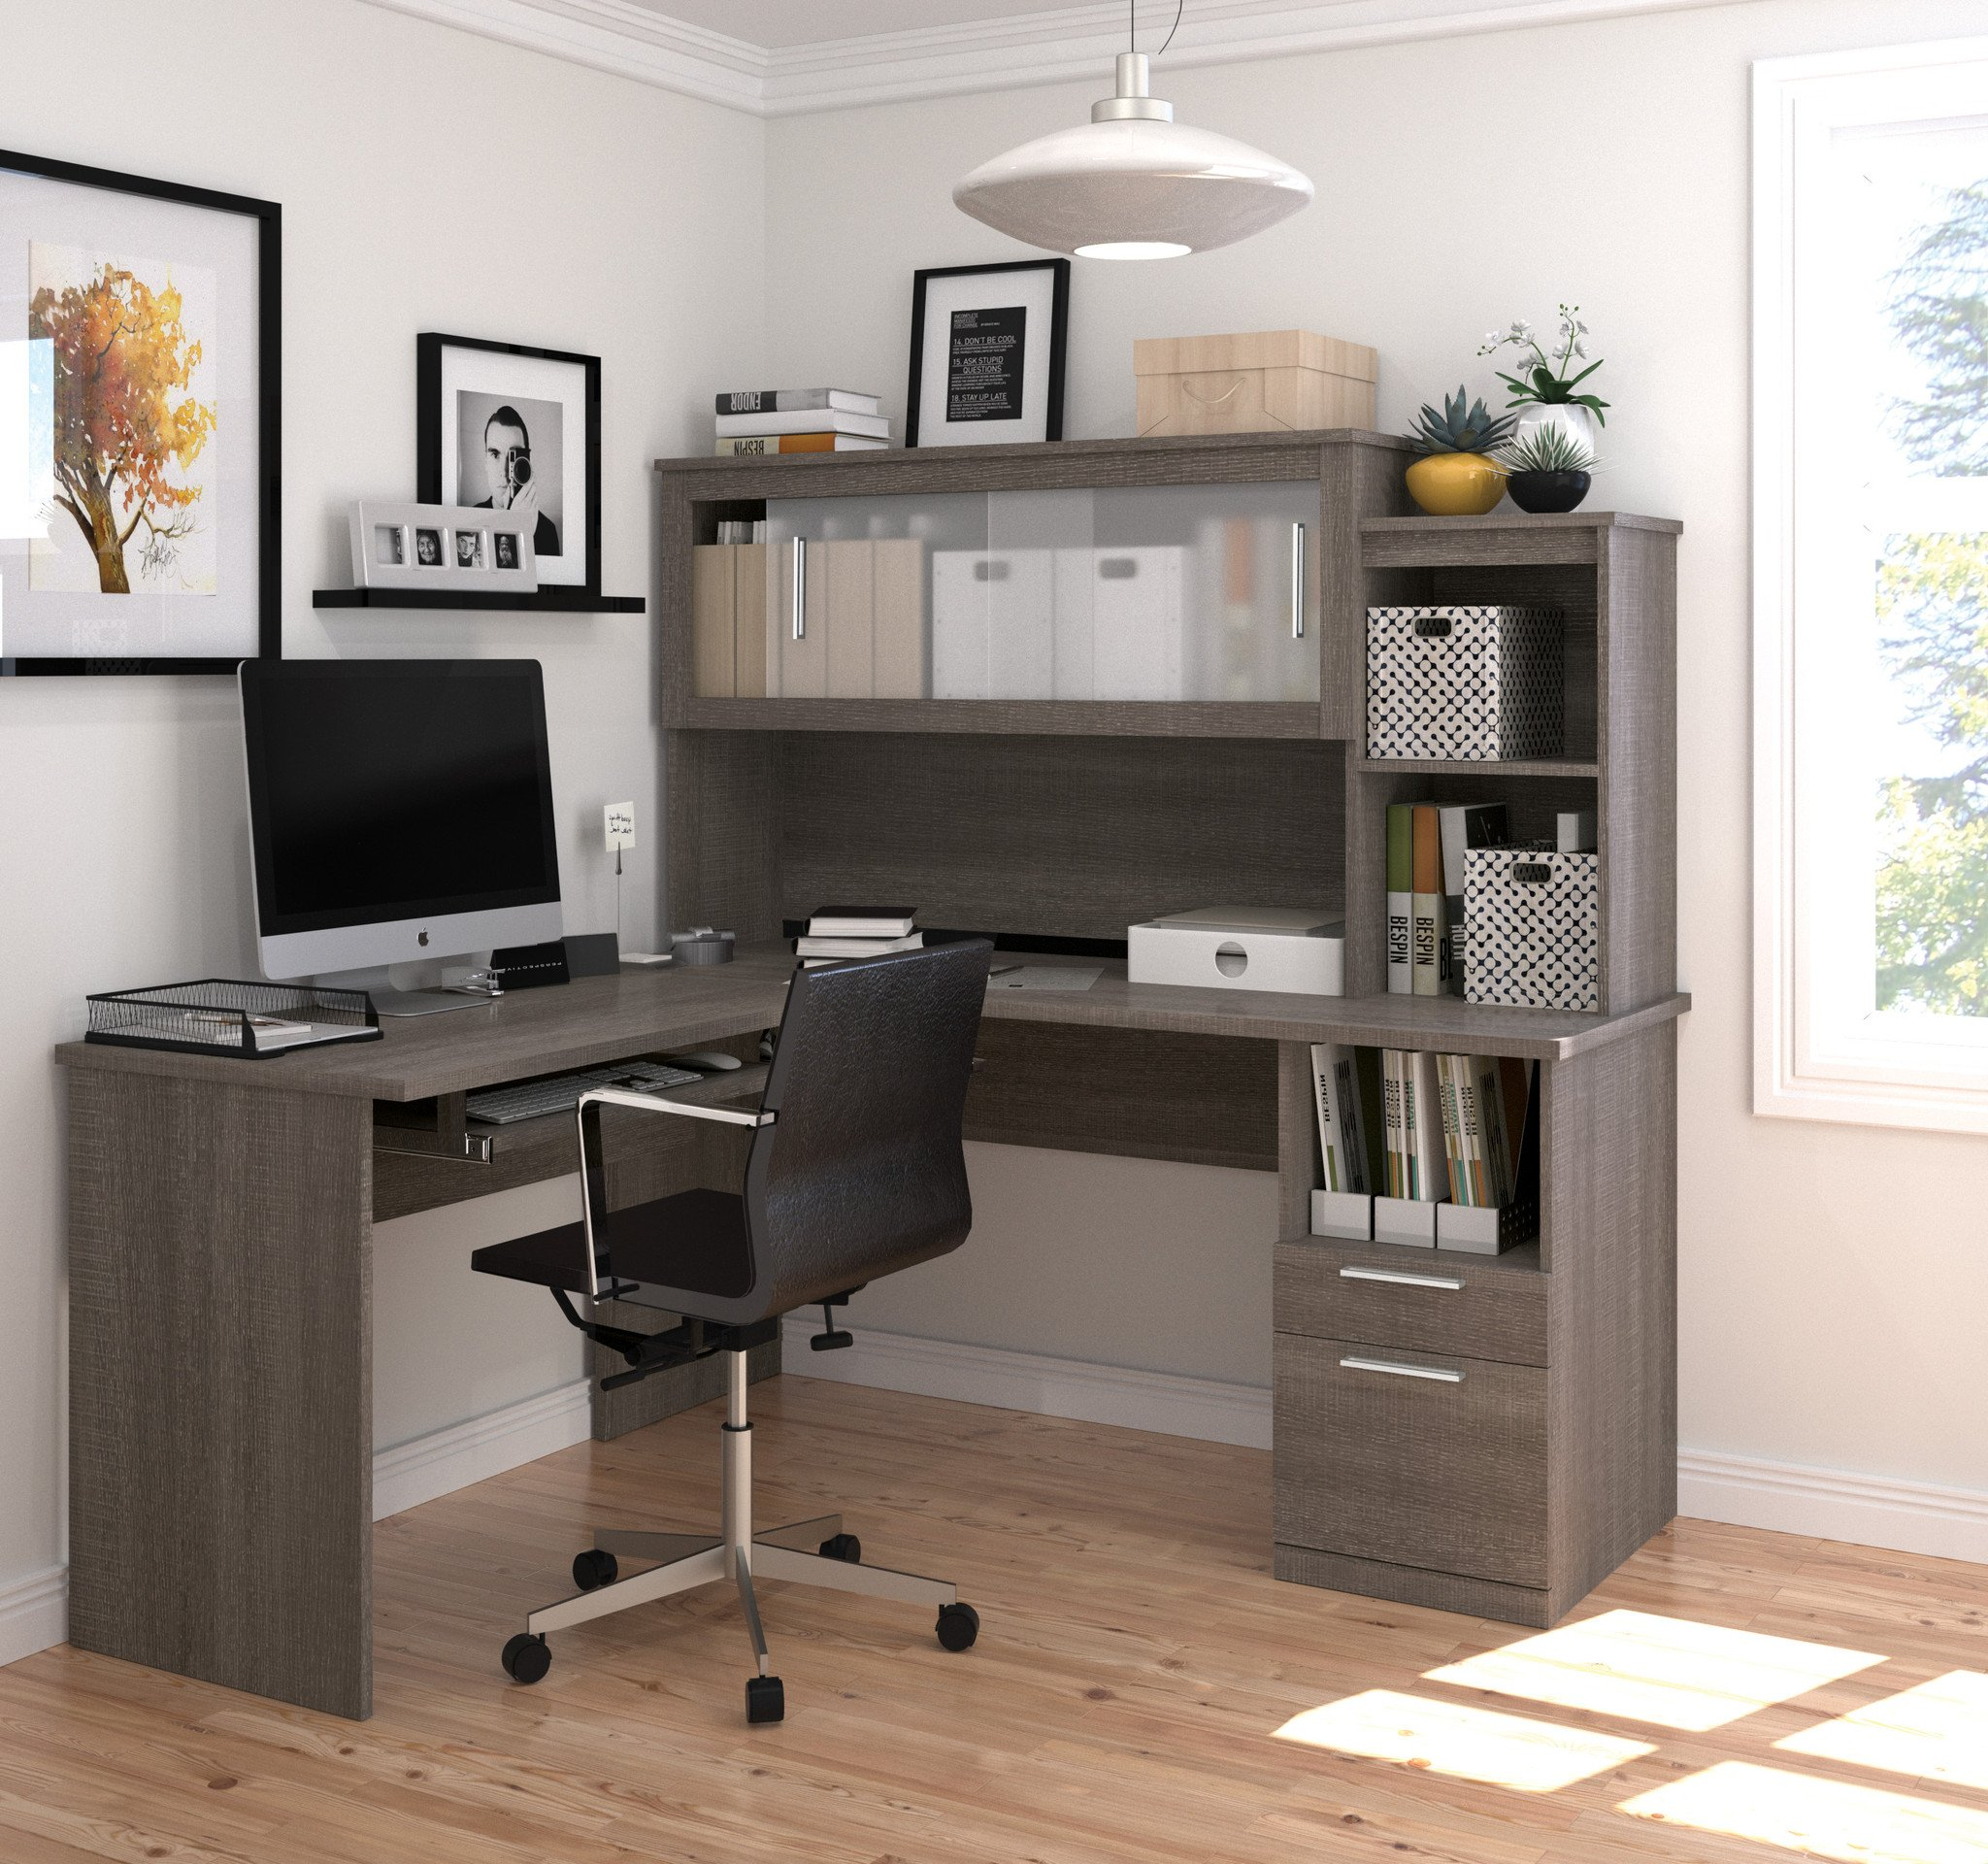 Genial This Premium L Shaped Desk From Bestar Comes In A Sleek Bark Gray Finish  With Silver Handles And Frosted Glass Hutch Doors That Combine For An  Elegant Look.